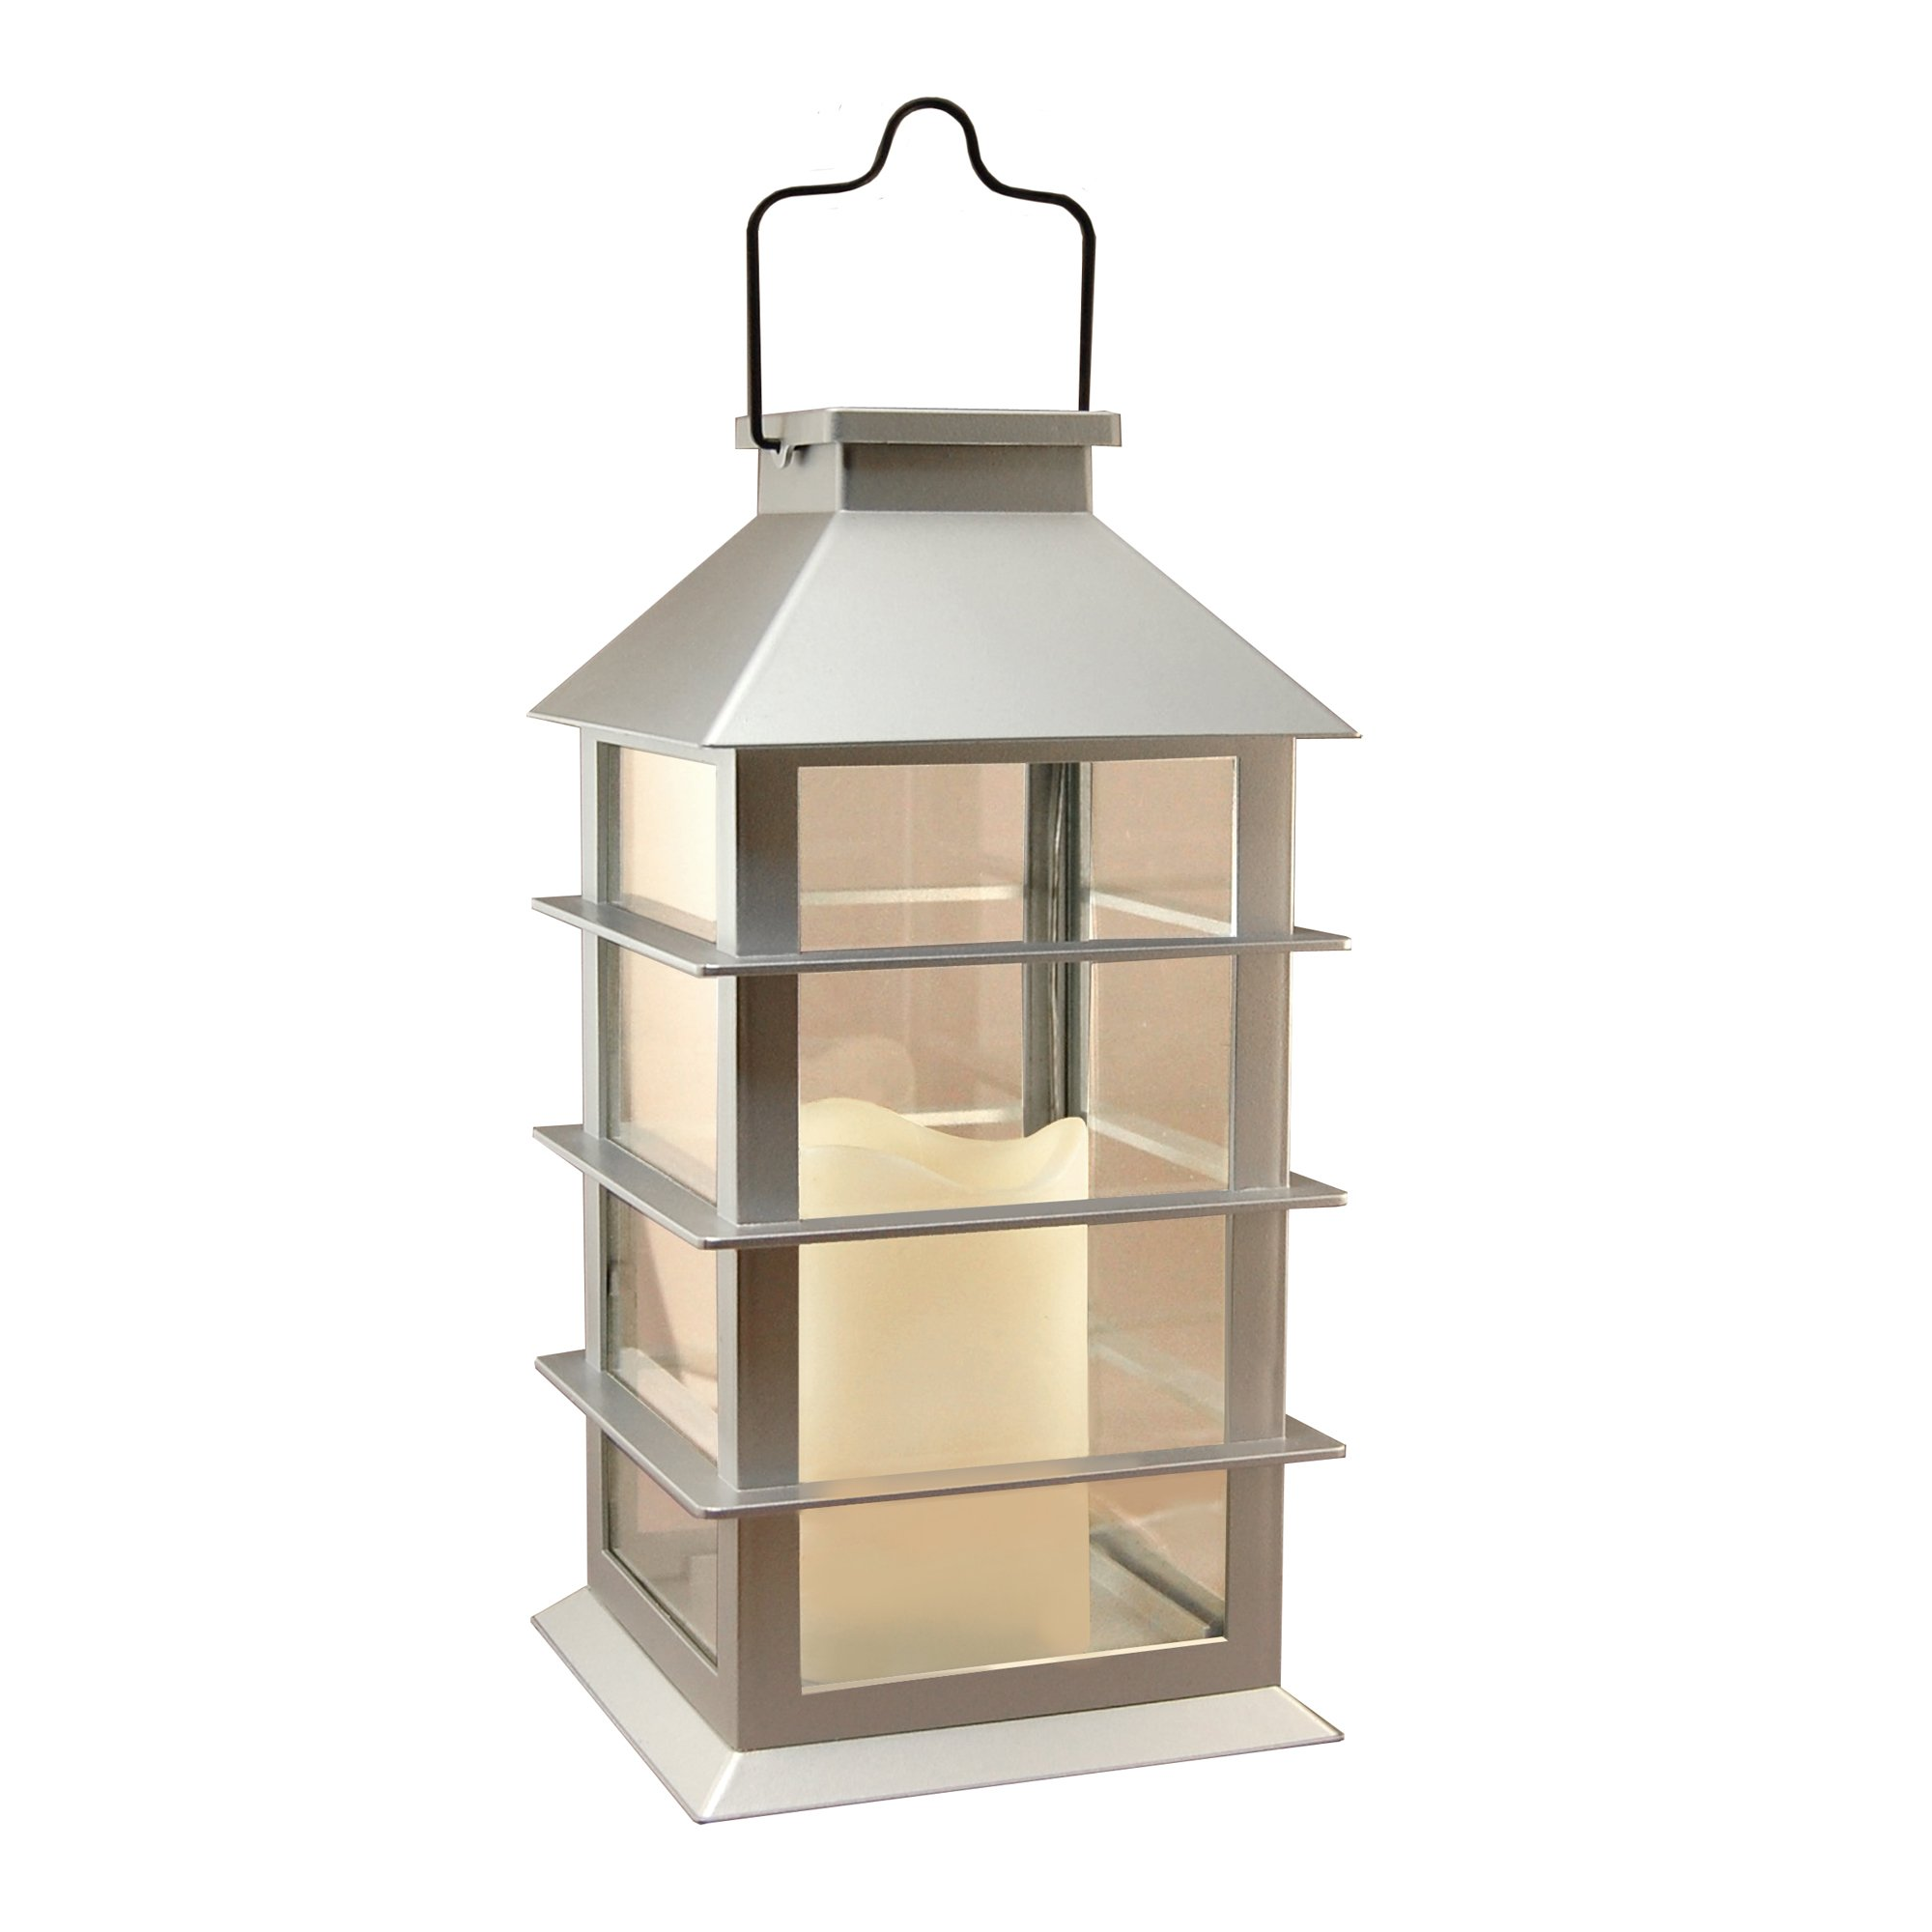 LumaBase 94101 Solar Powered Lantern with LED Candle, Silver